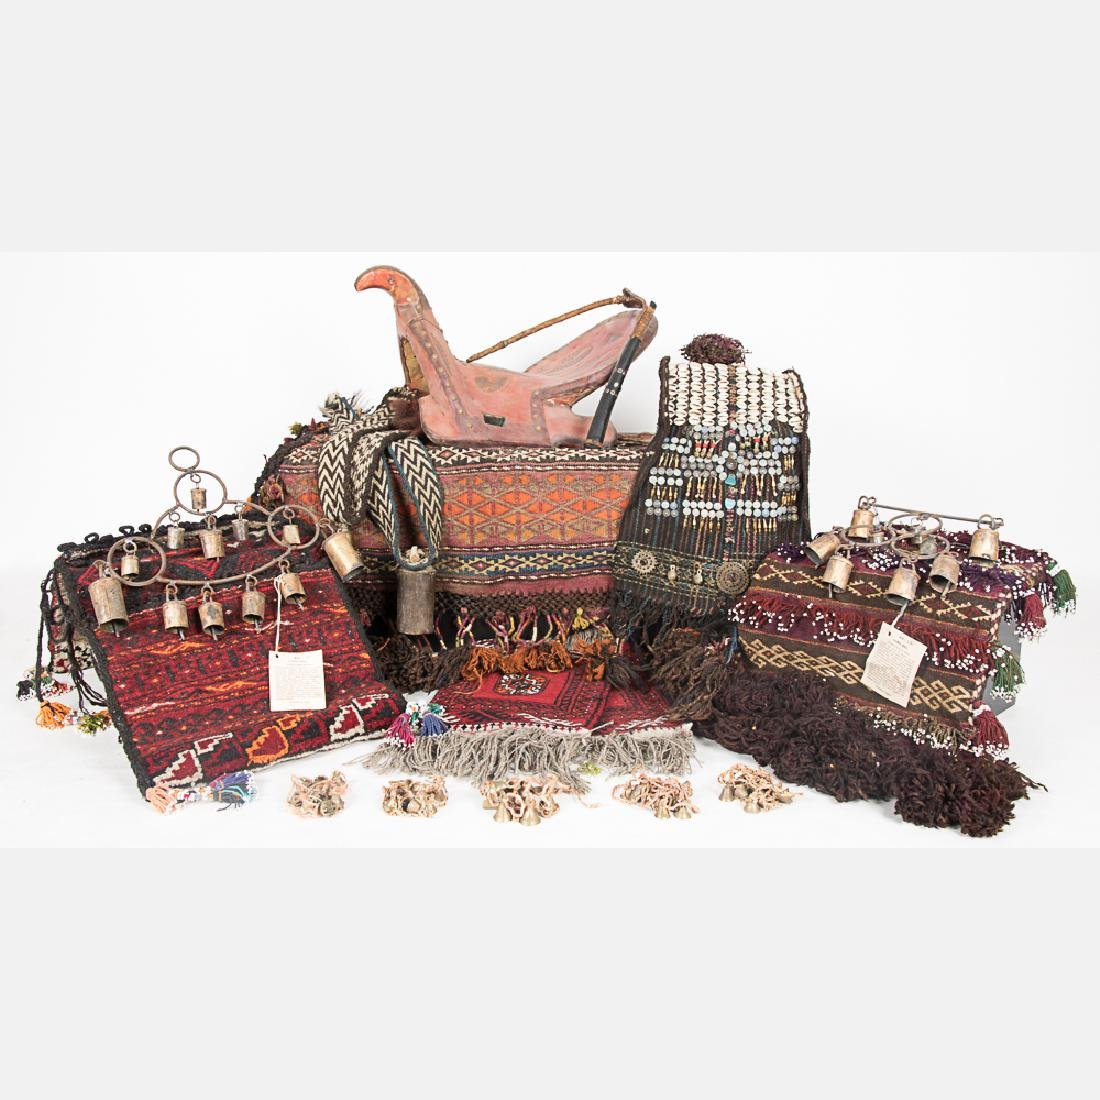 A Collection of Middle Eastern Woven Saddle and Saddle